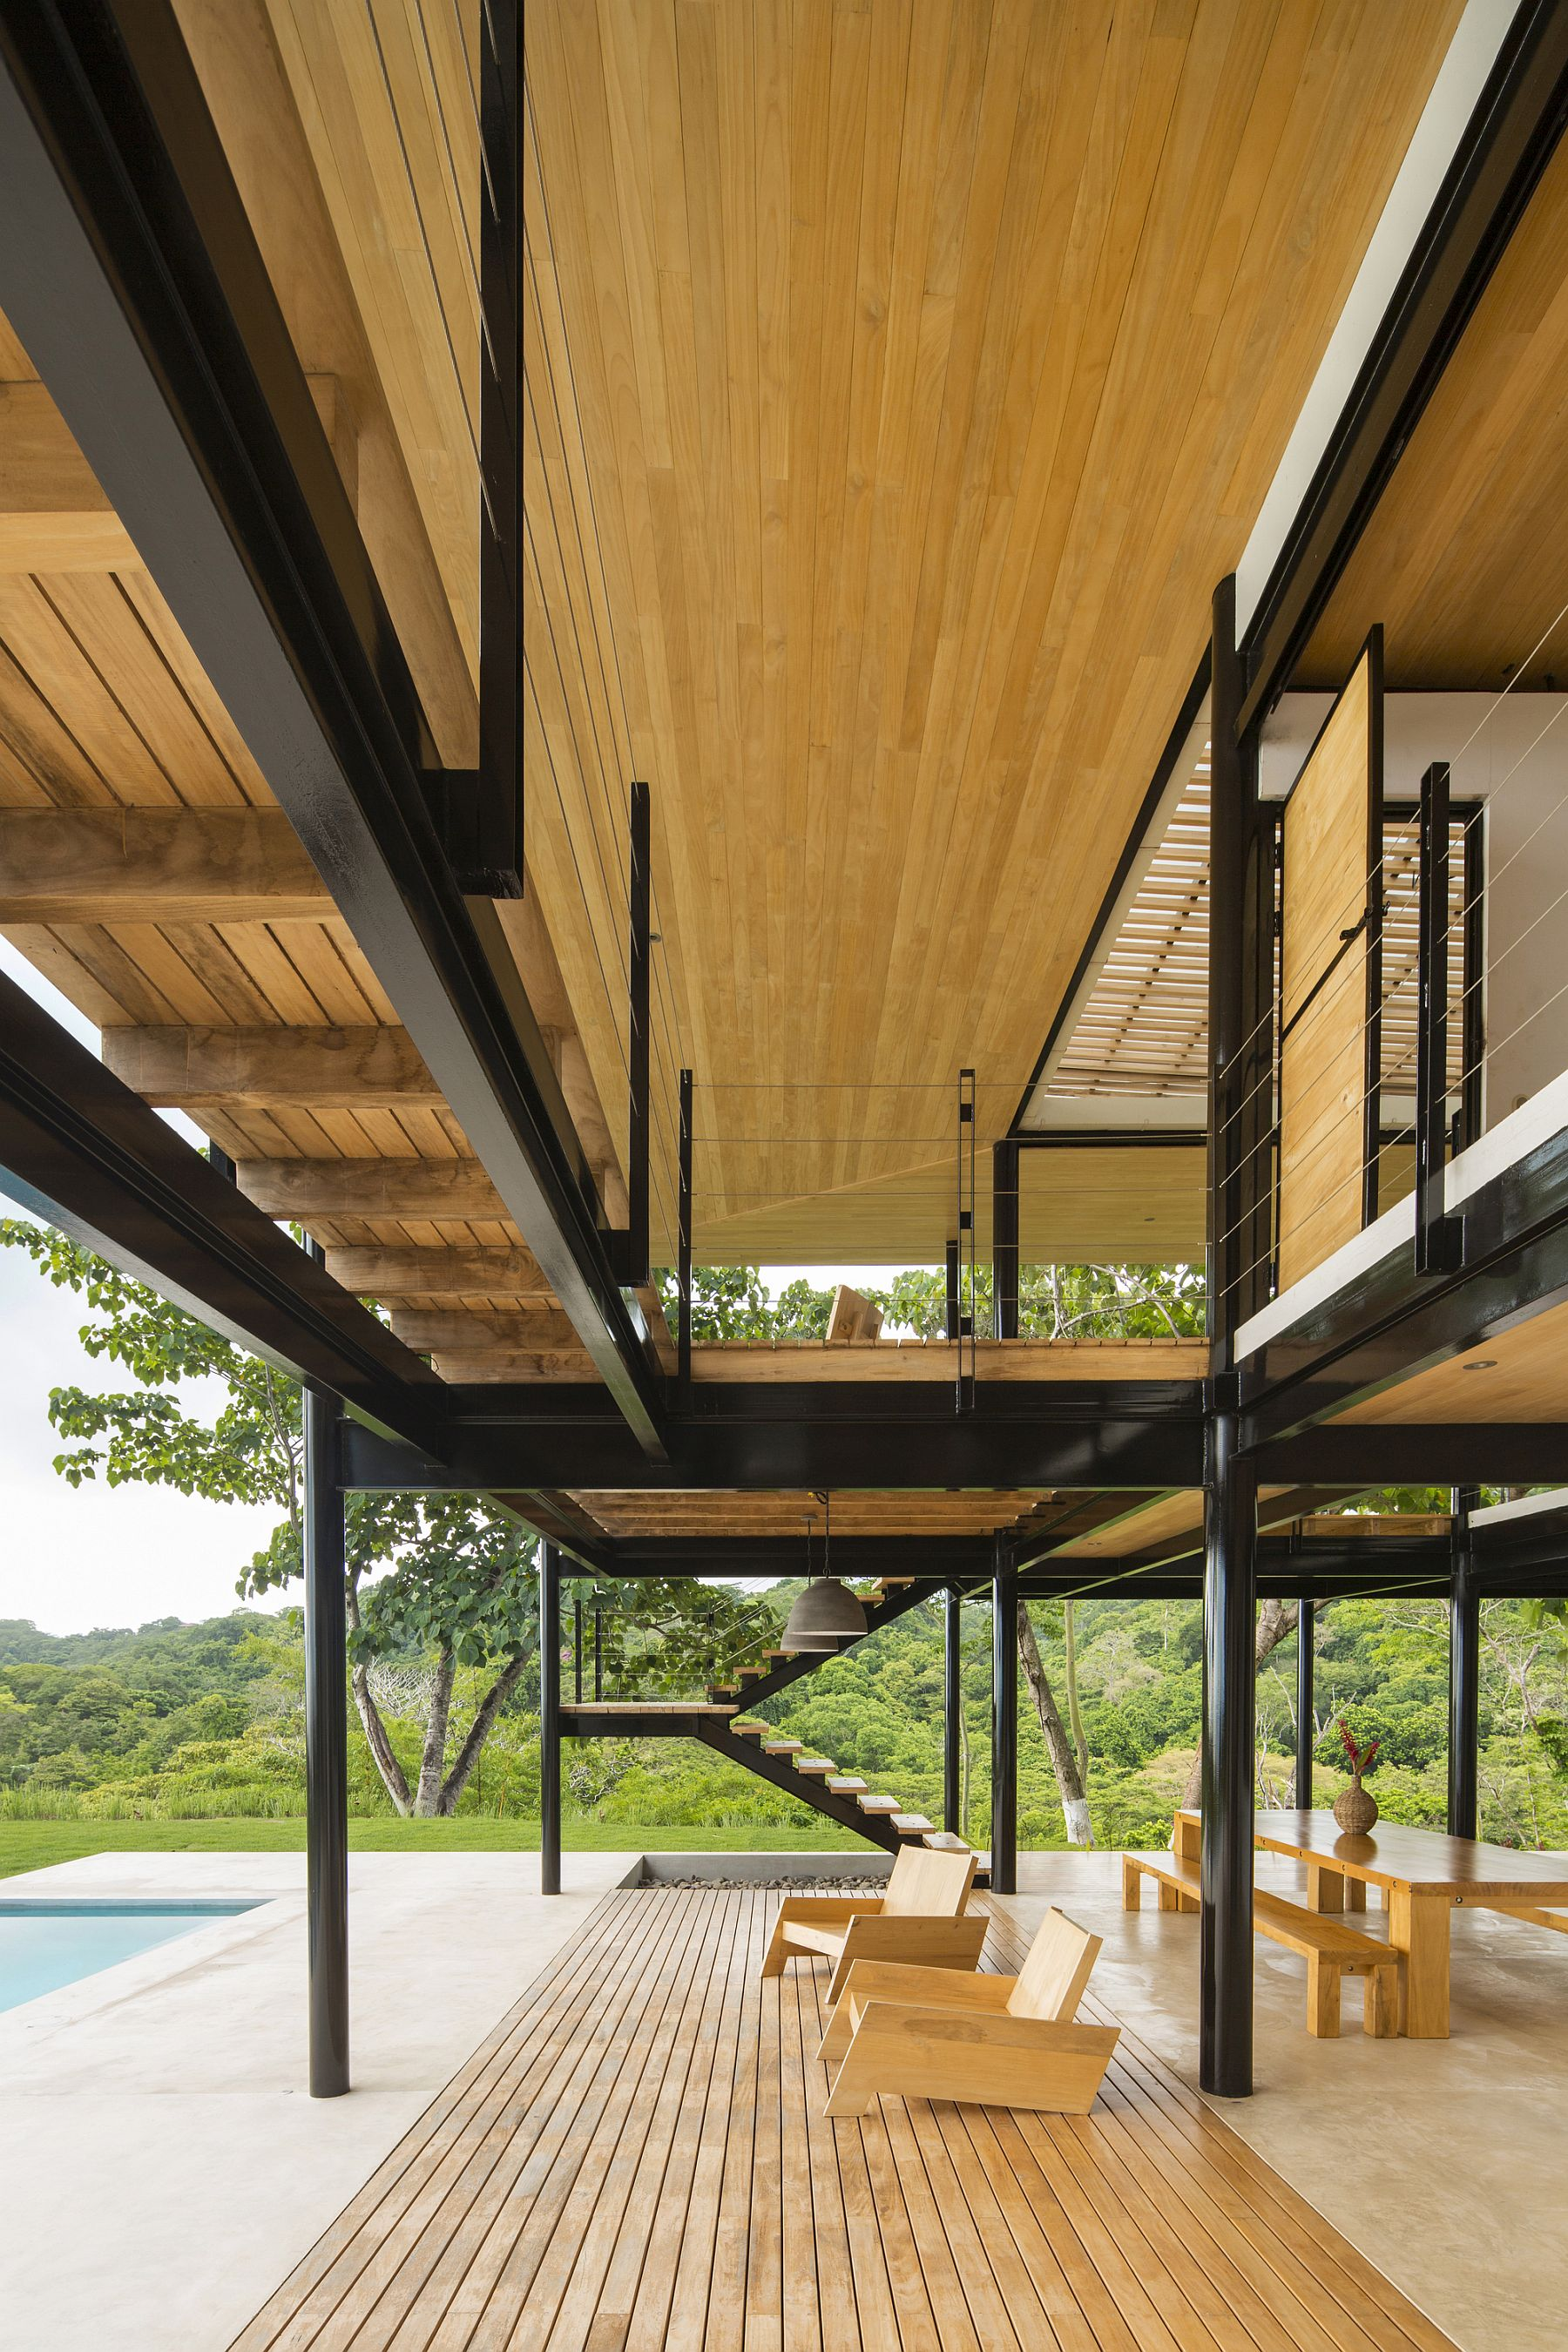 Wooden ceiling and terraces give the interior an inviting appeal